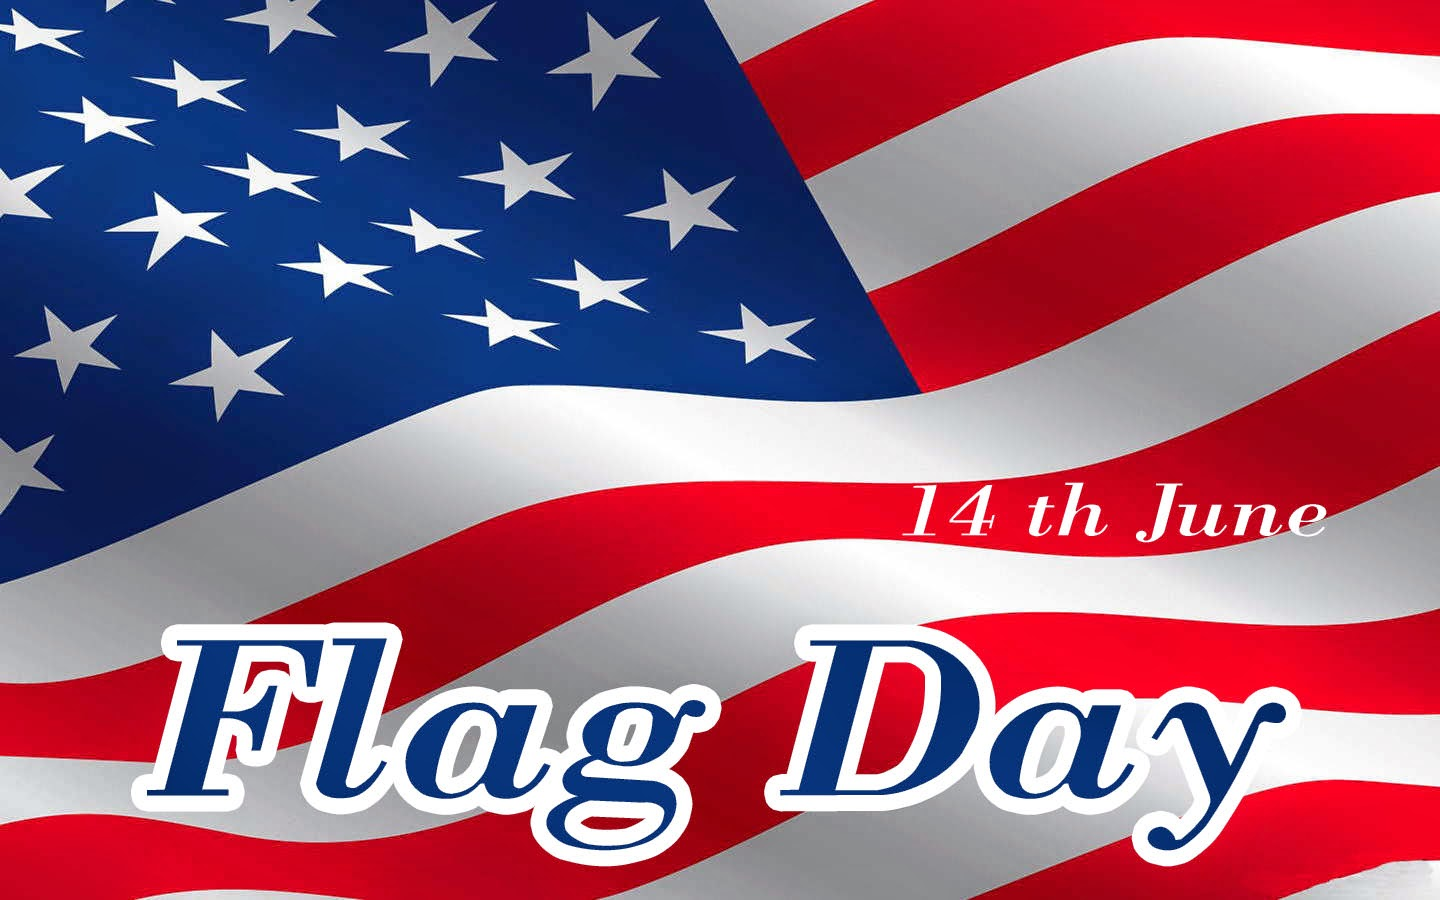 Flag Day 2019: Date, History, Significance, Observance And Celebration